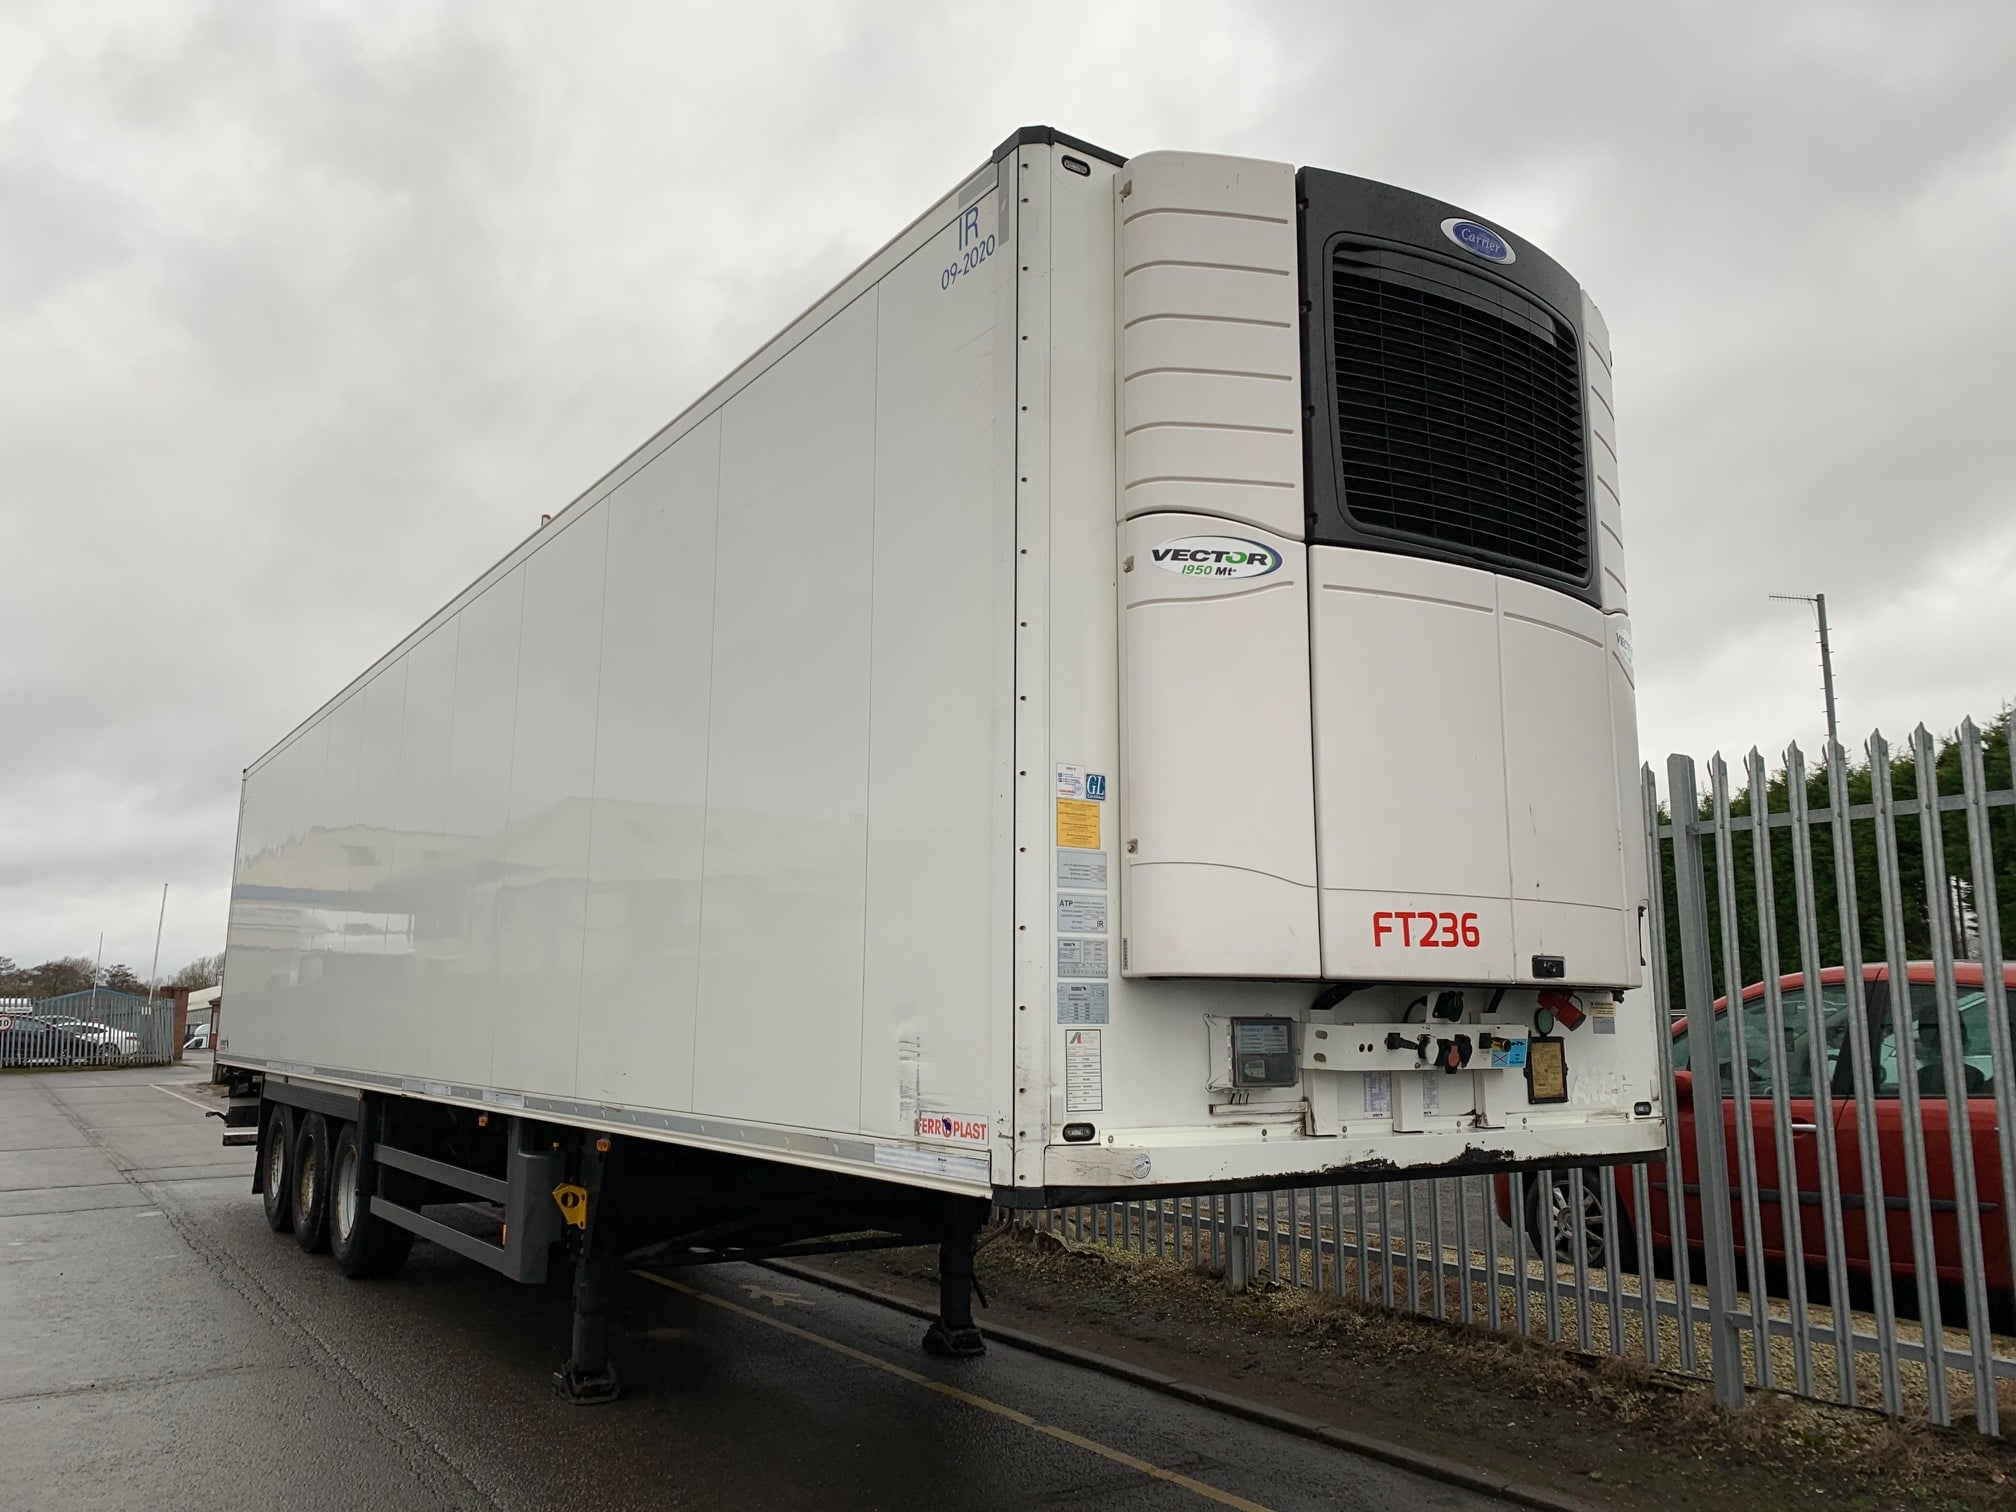 2014 Schmitz Dual Temp Fridge Trailer. Carrier Vector 1950Mt Engine, 2.59m Internal Height, SAF Axles, Drum Brakes, Aluminium Floor, Barn Doors, 2 x Load Lock Rails, Raise Lower Valve Facility.